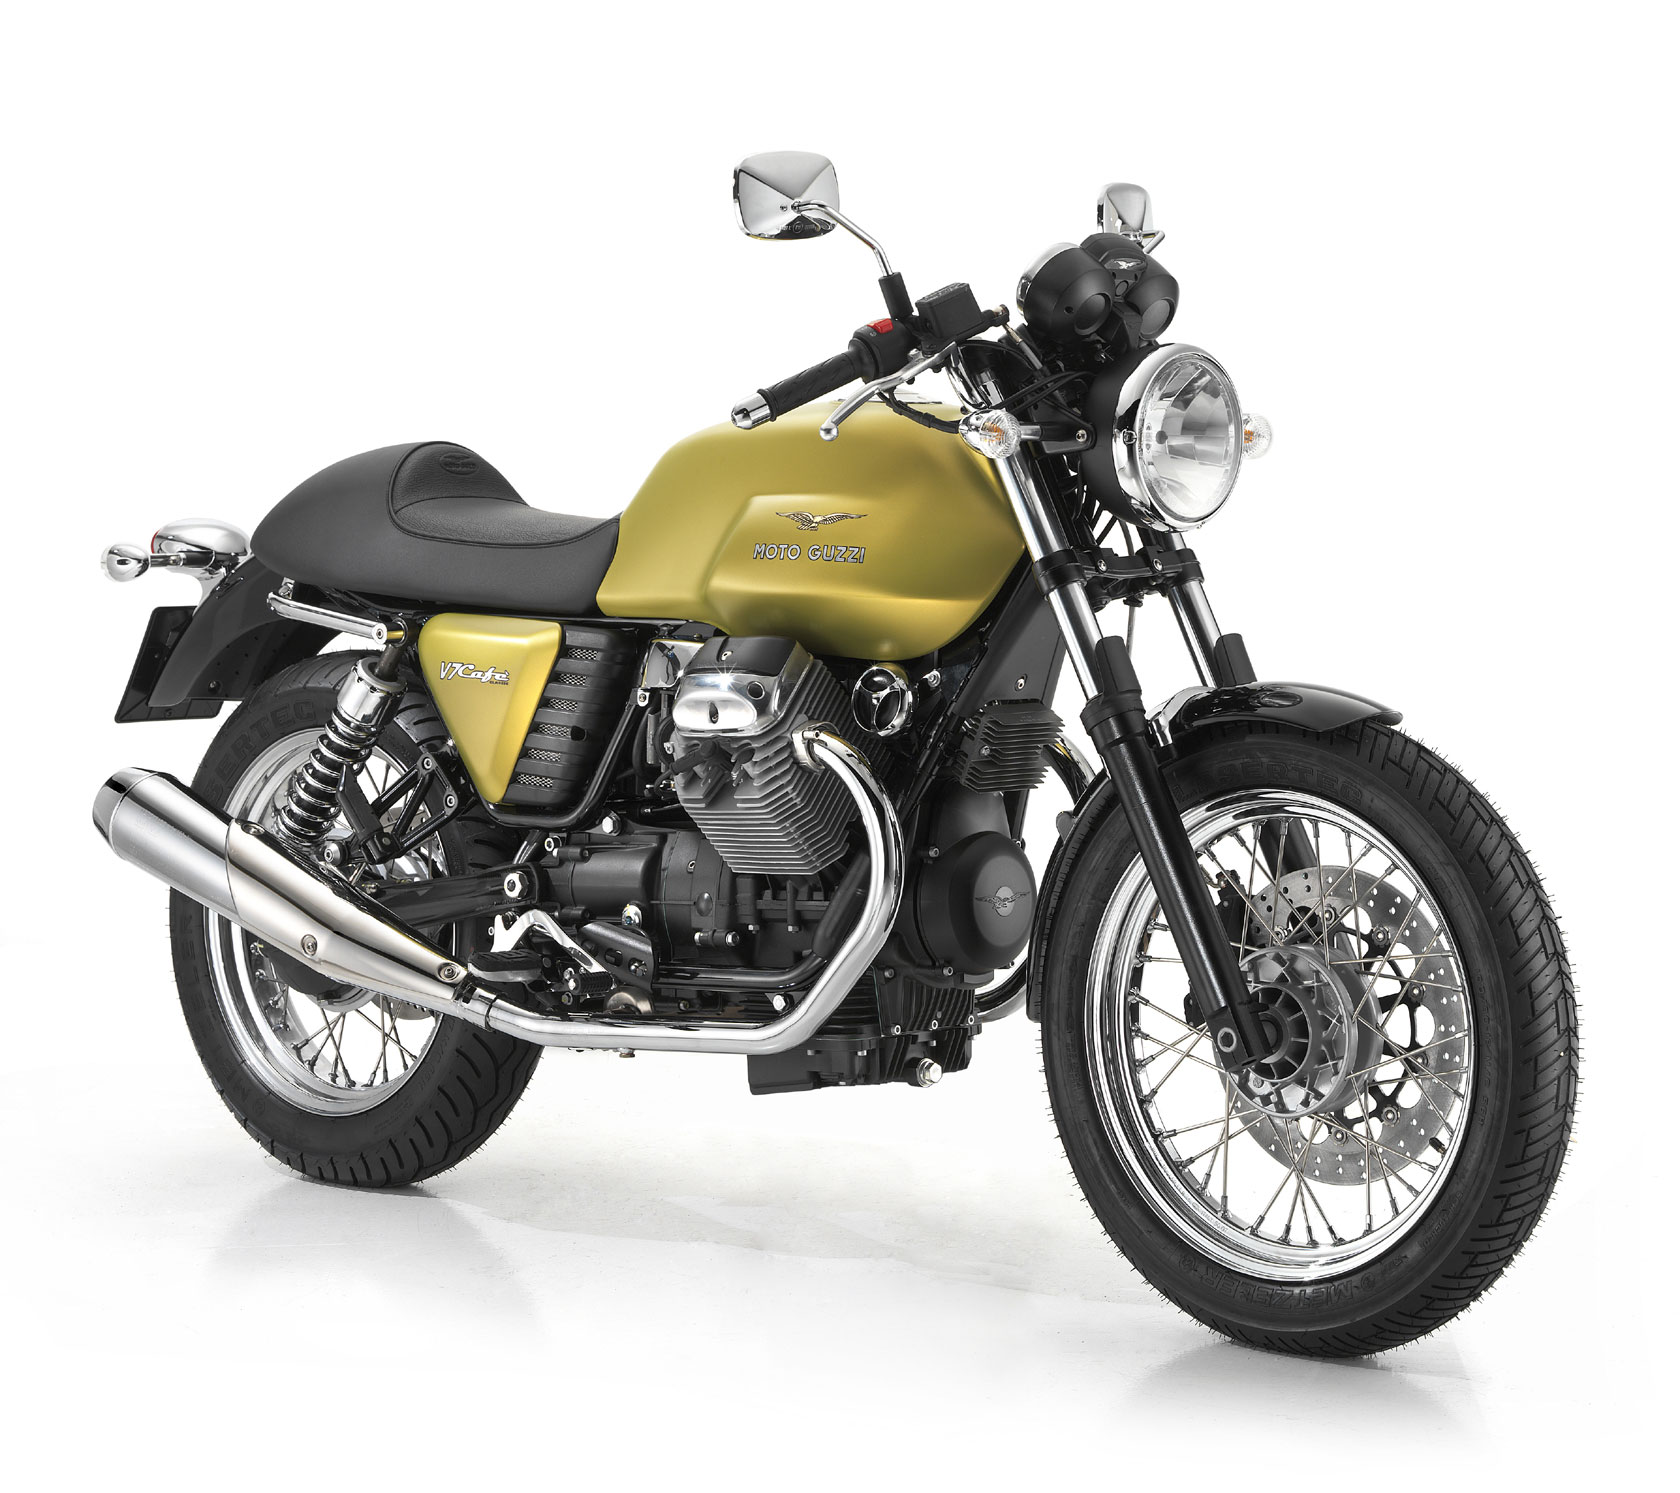 Kawasaki W800 Cafe Style images #86152